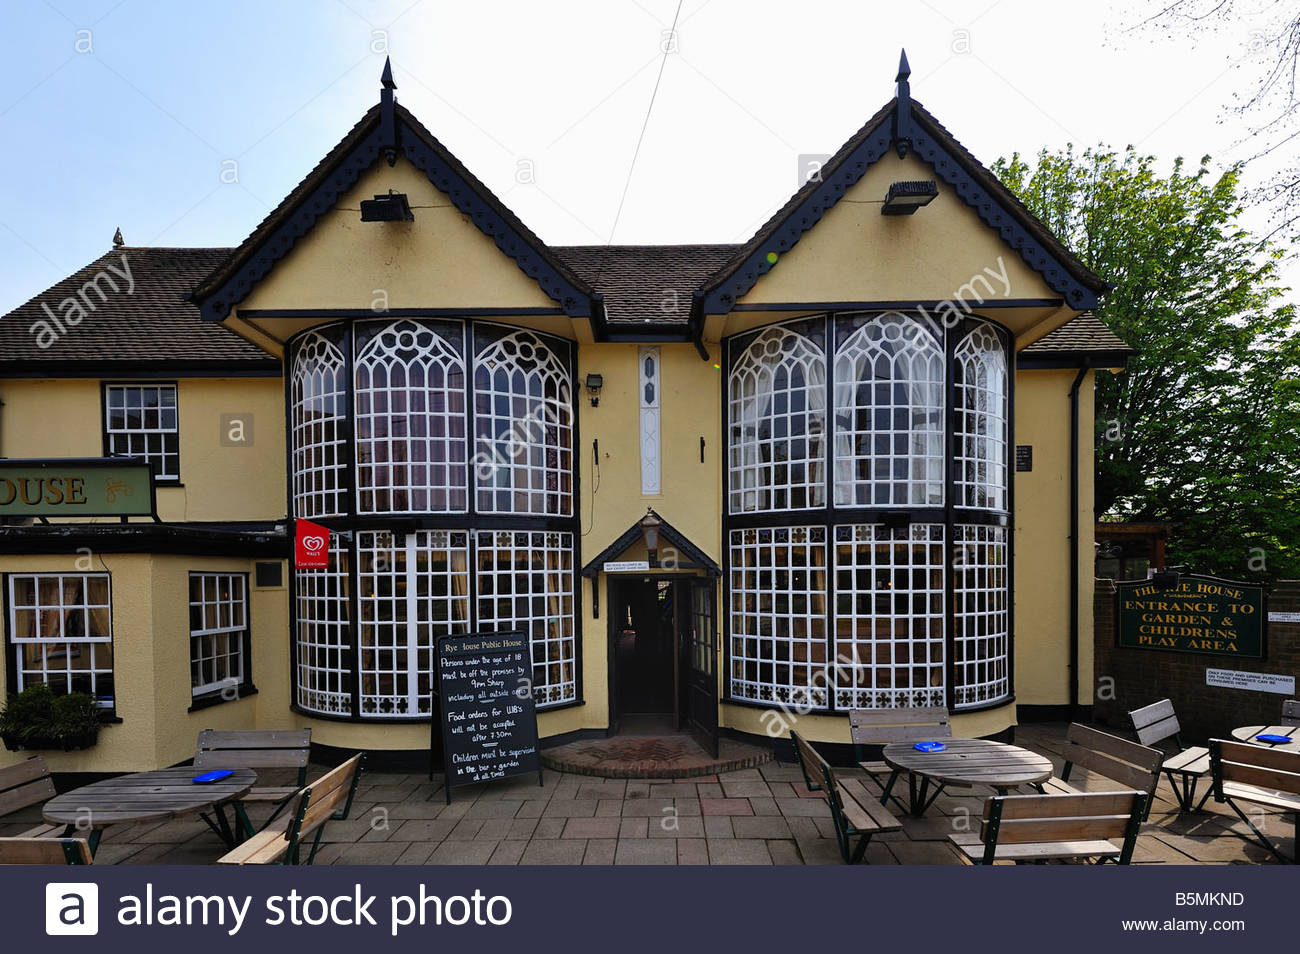 The Rye House, a pub and restaurant at Rye House, Hoddesdon. - Stock Image